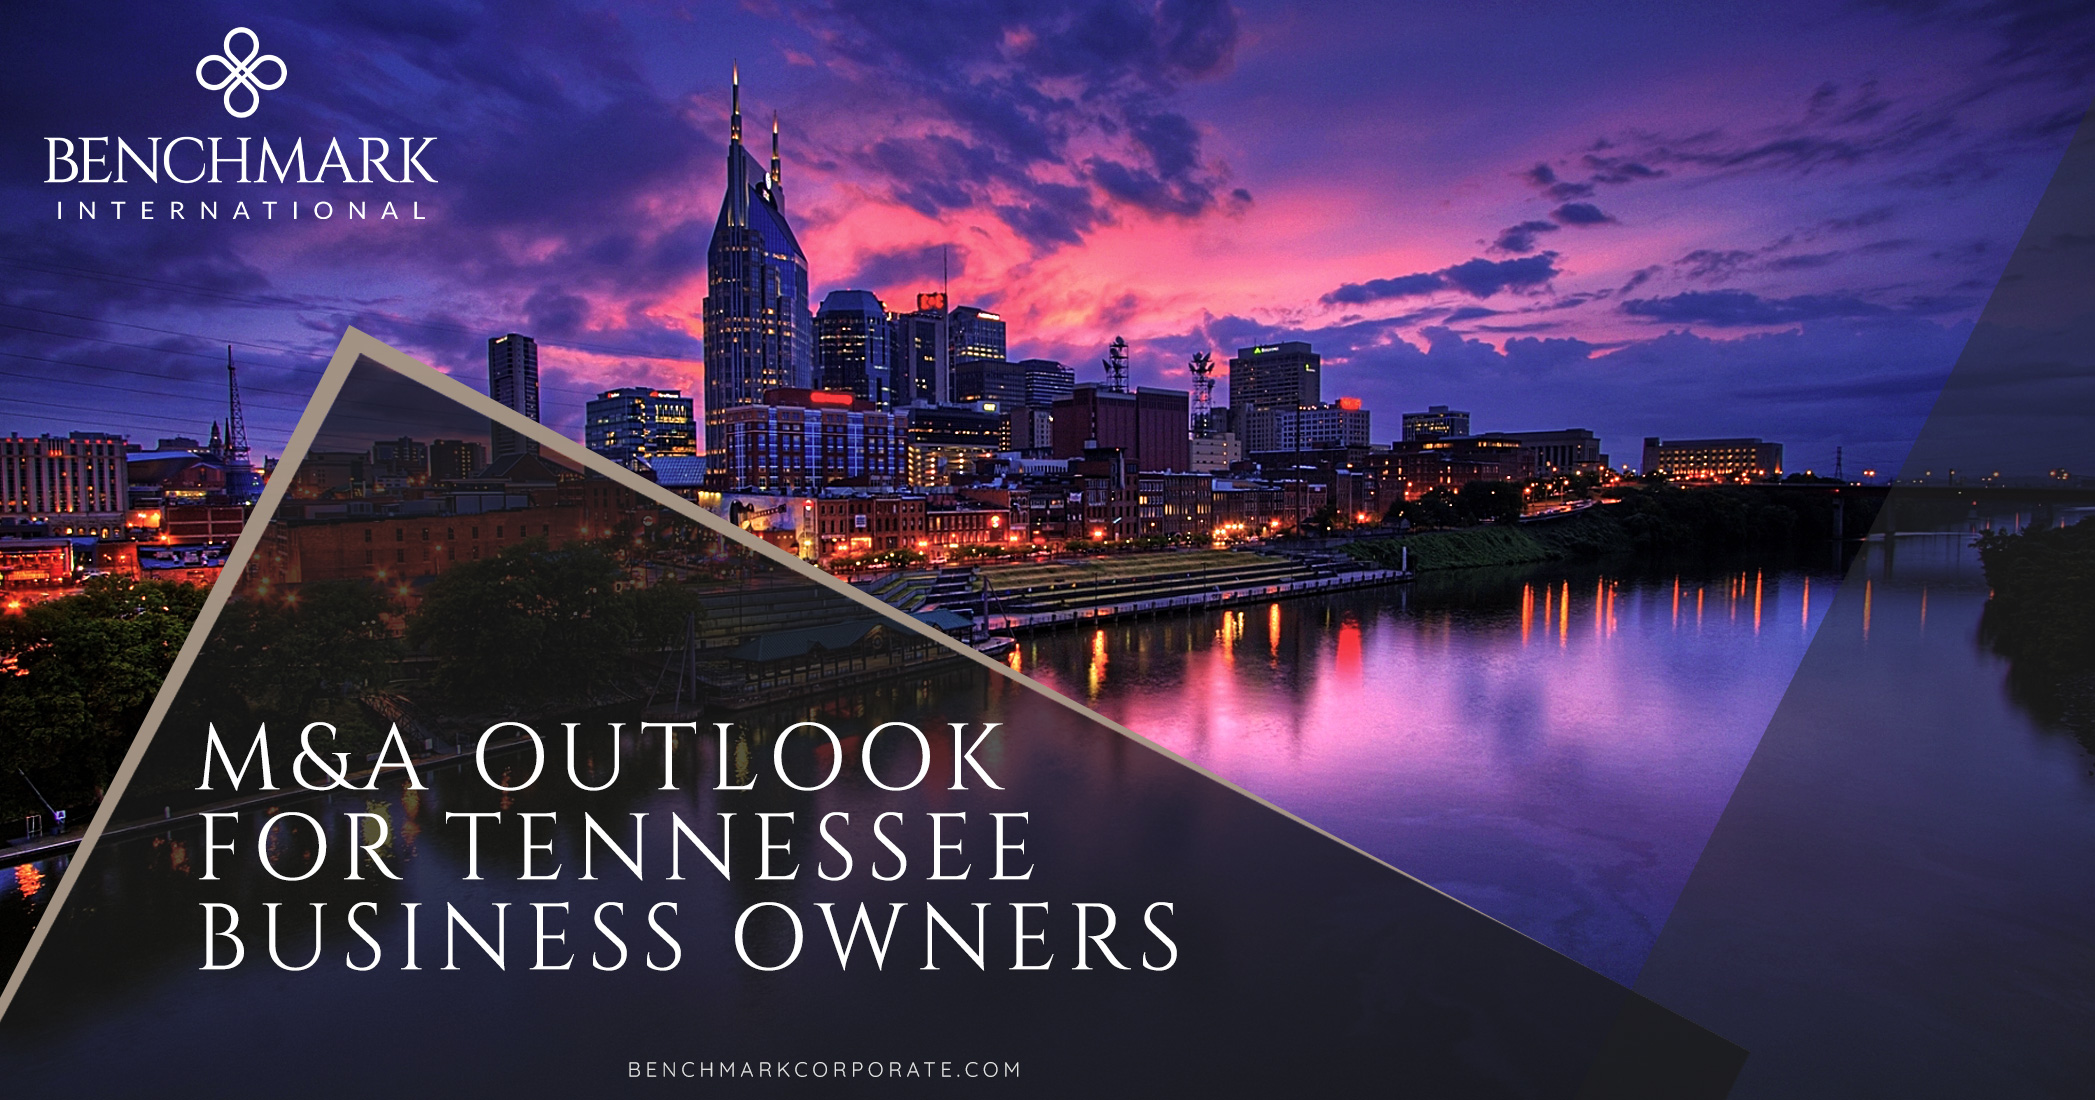 M&A Outlook for Tennessee Business Owners